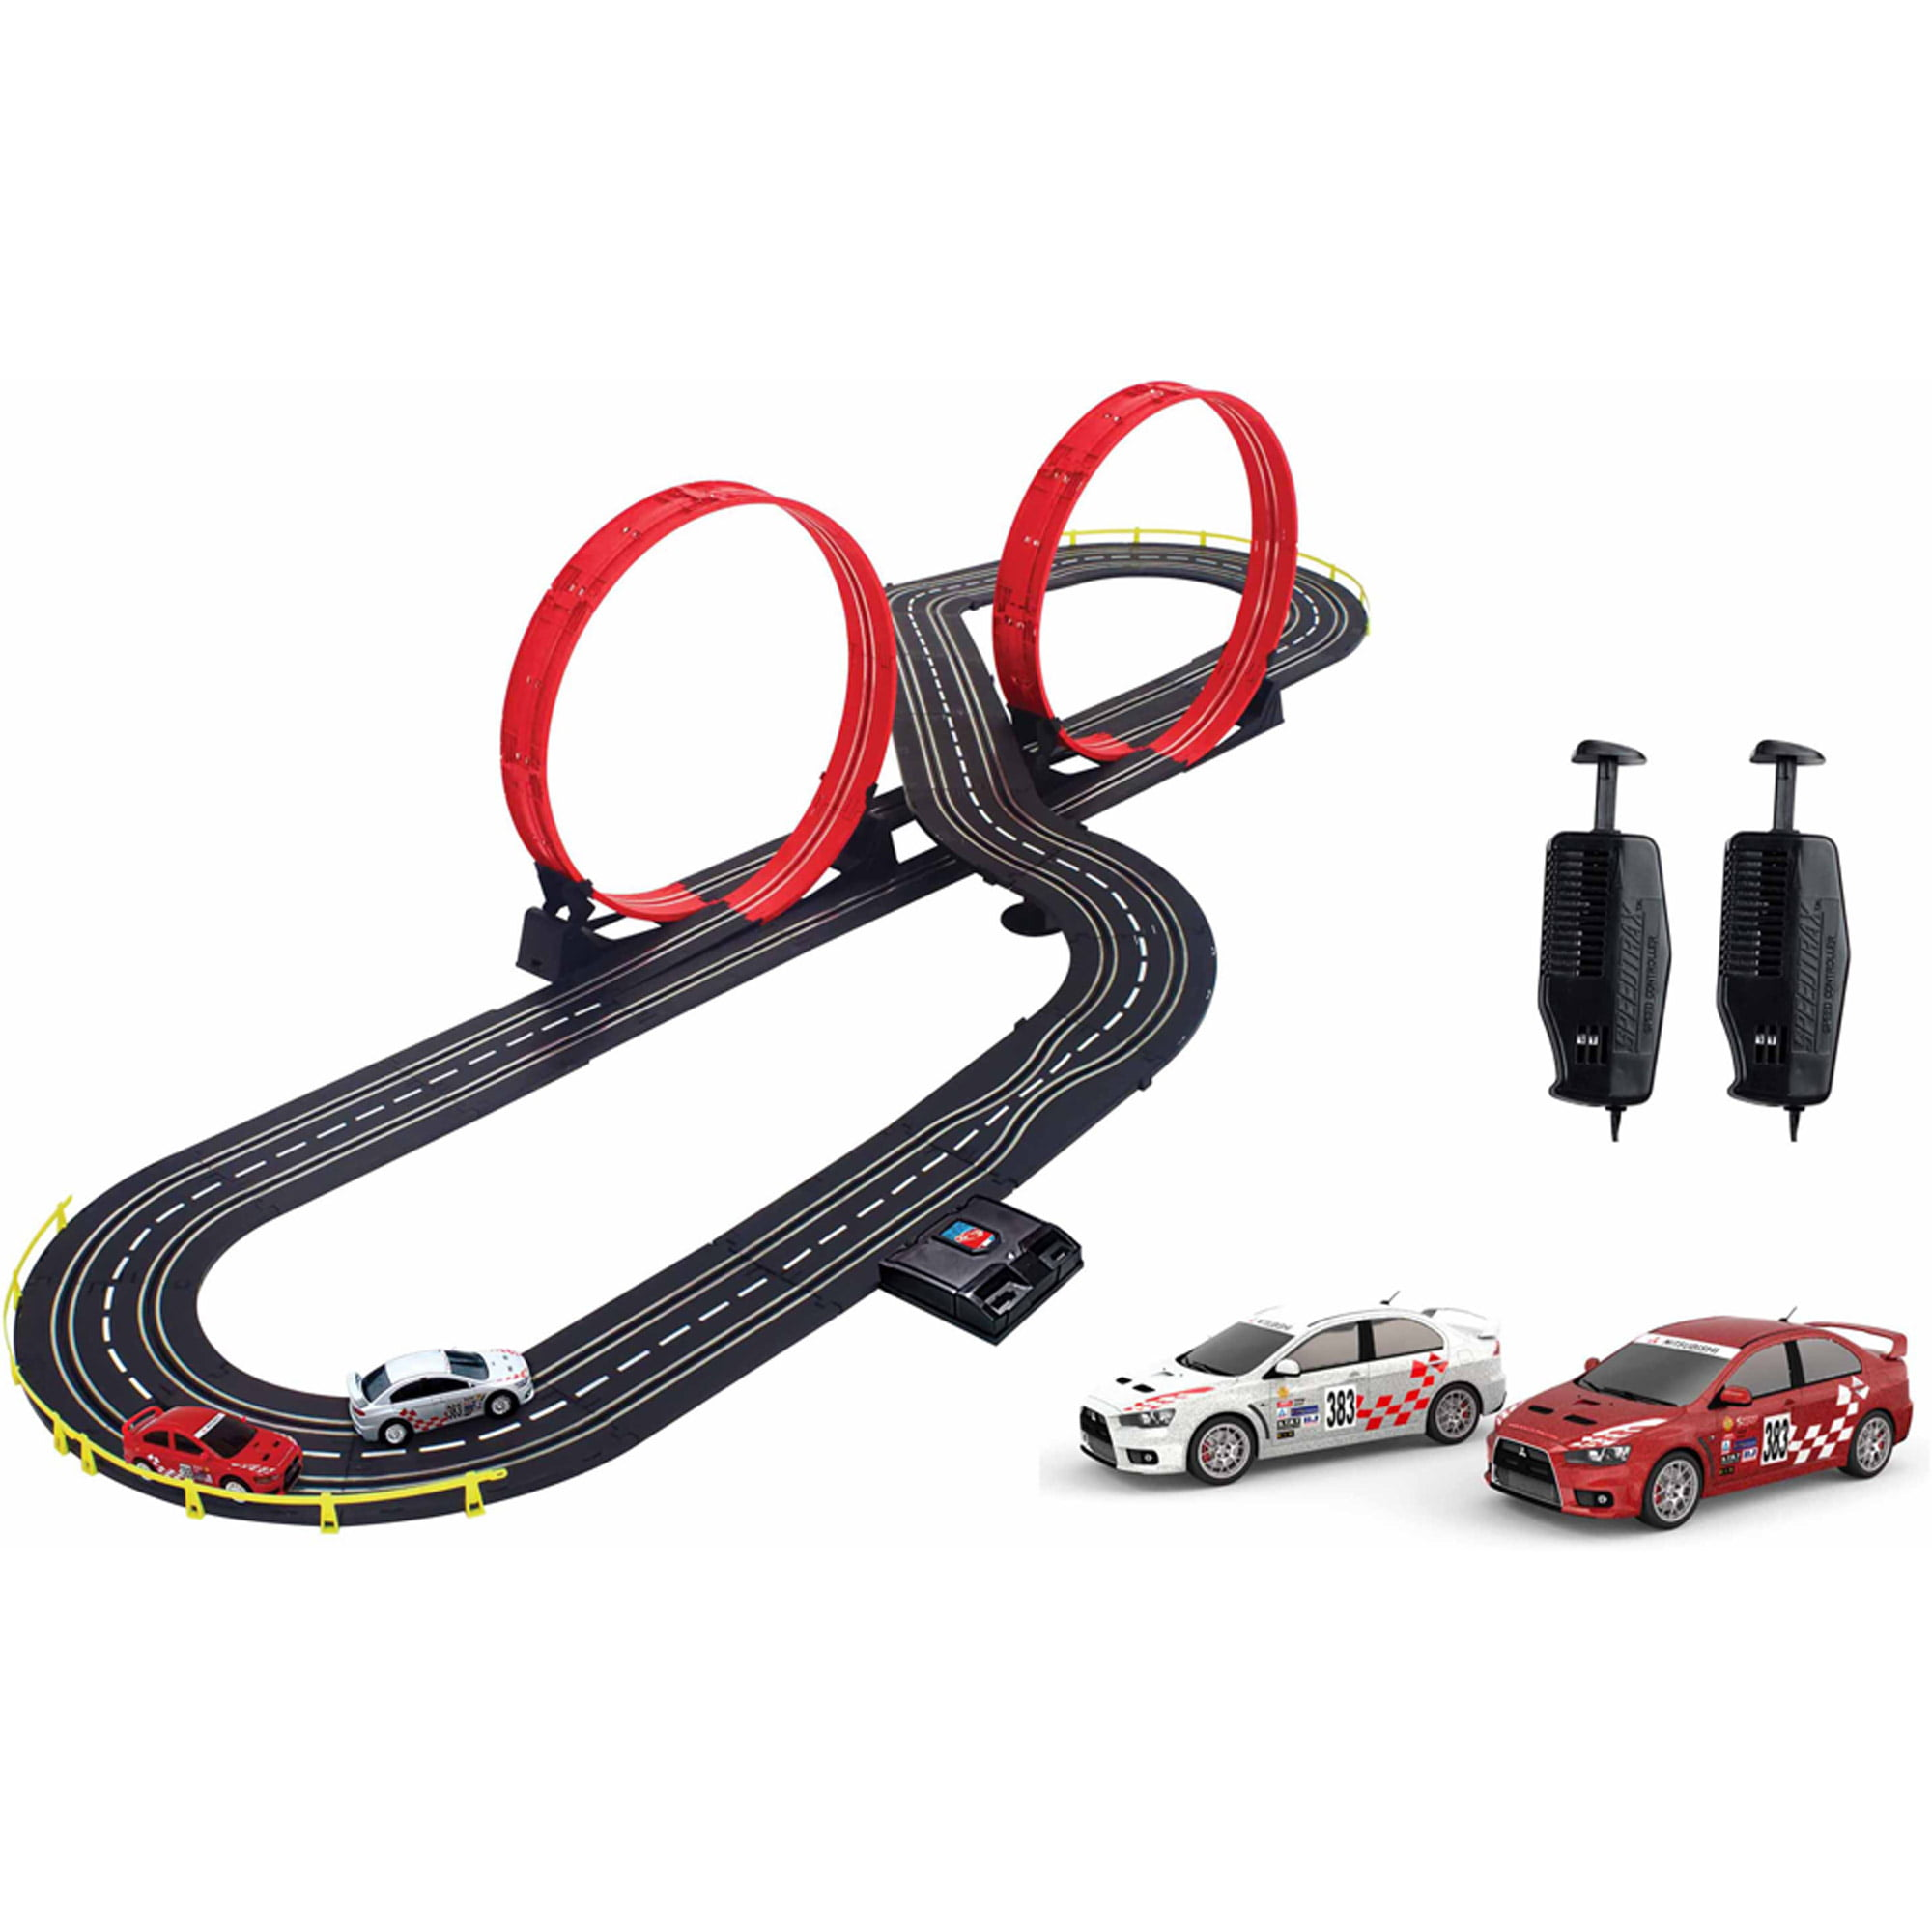 artin 143 scale ultimate express slot car racing set walmartcom